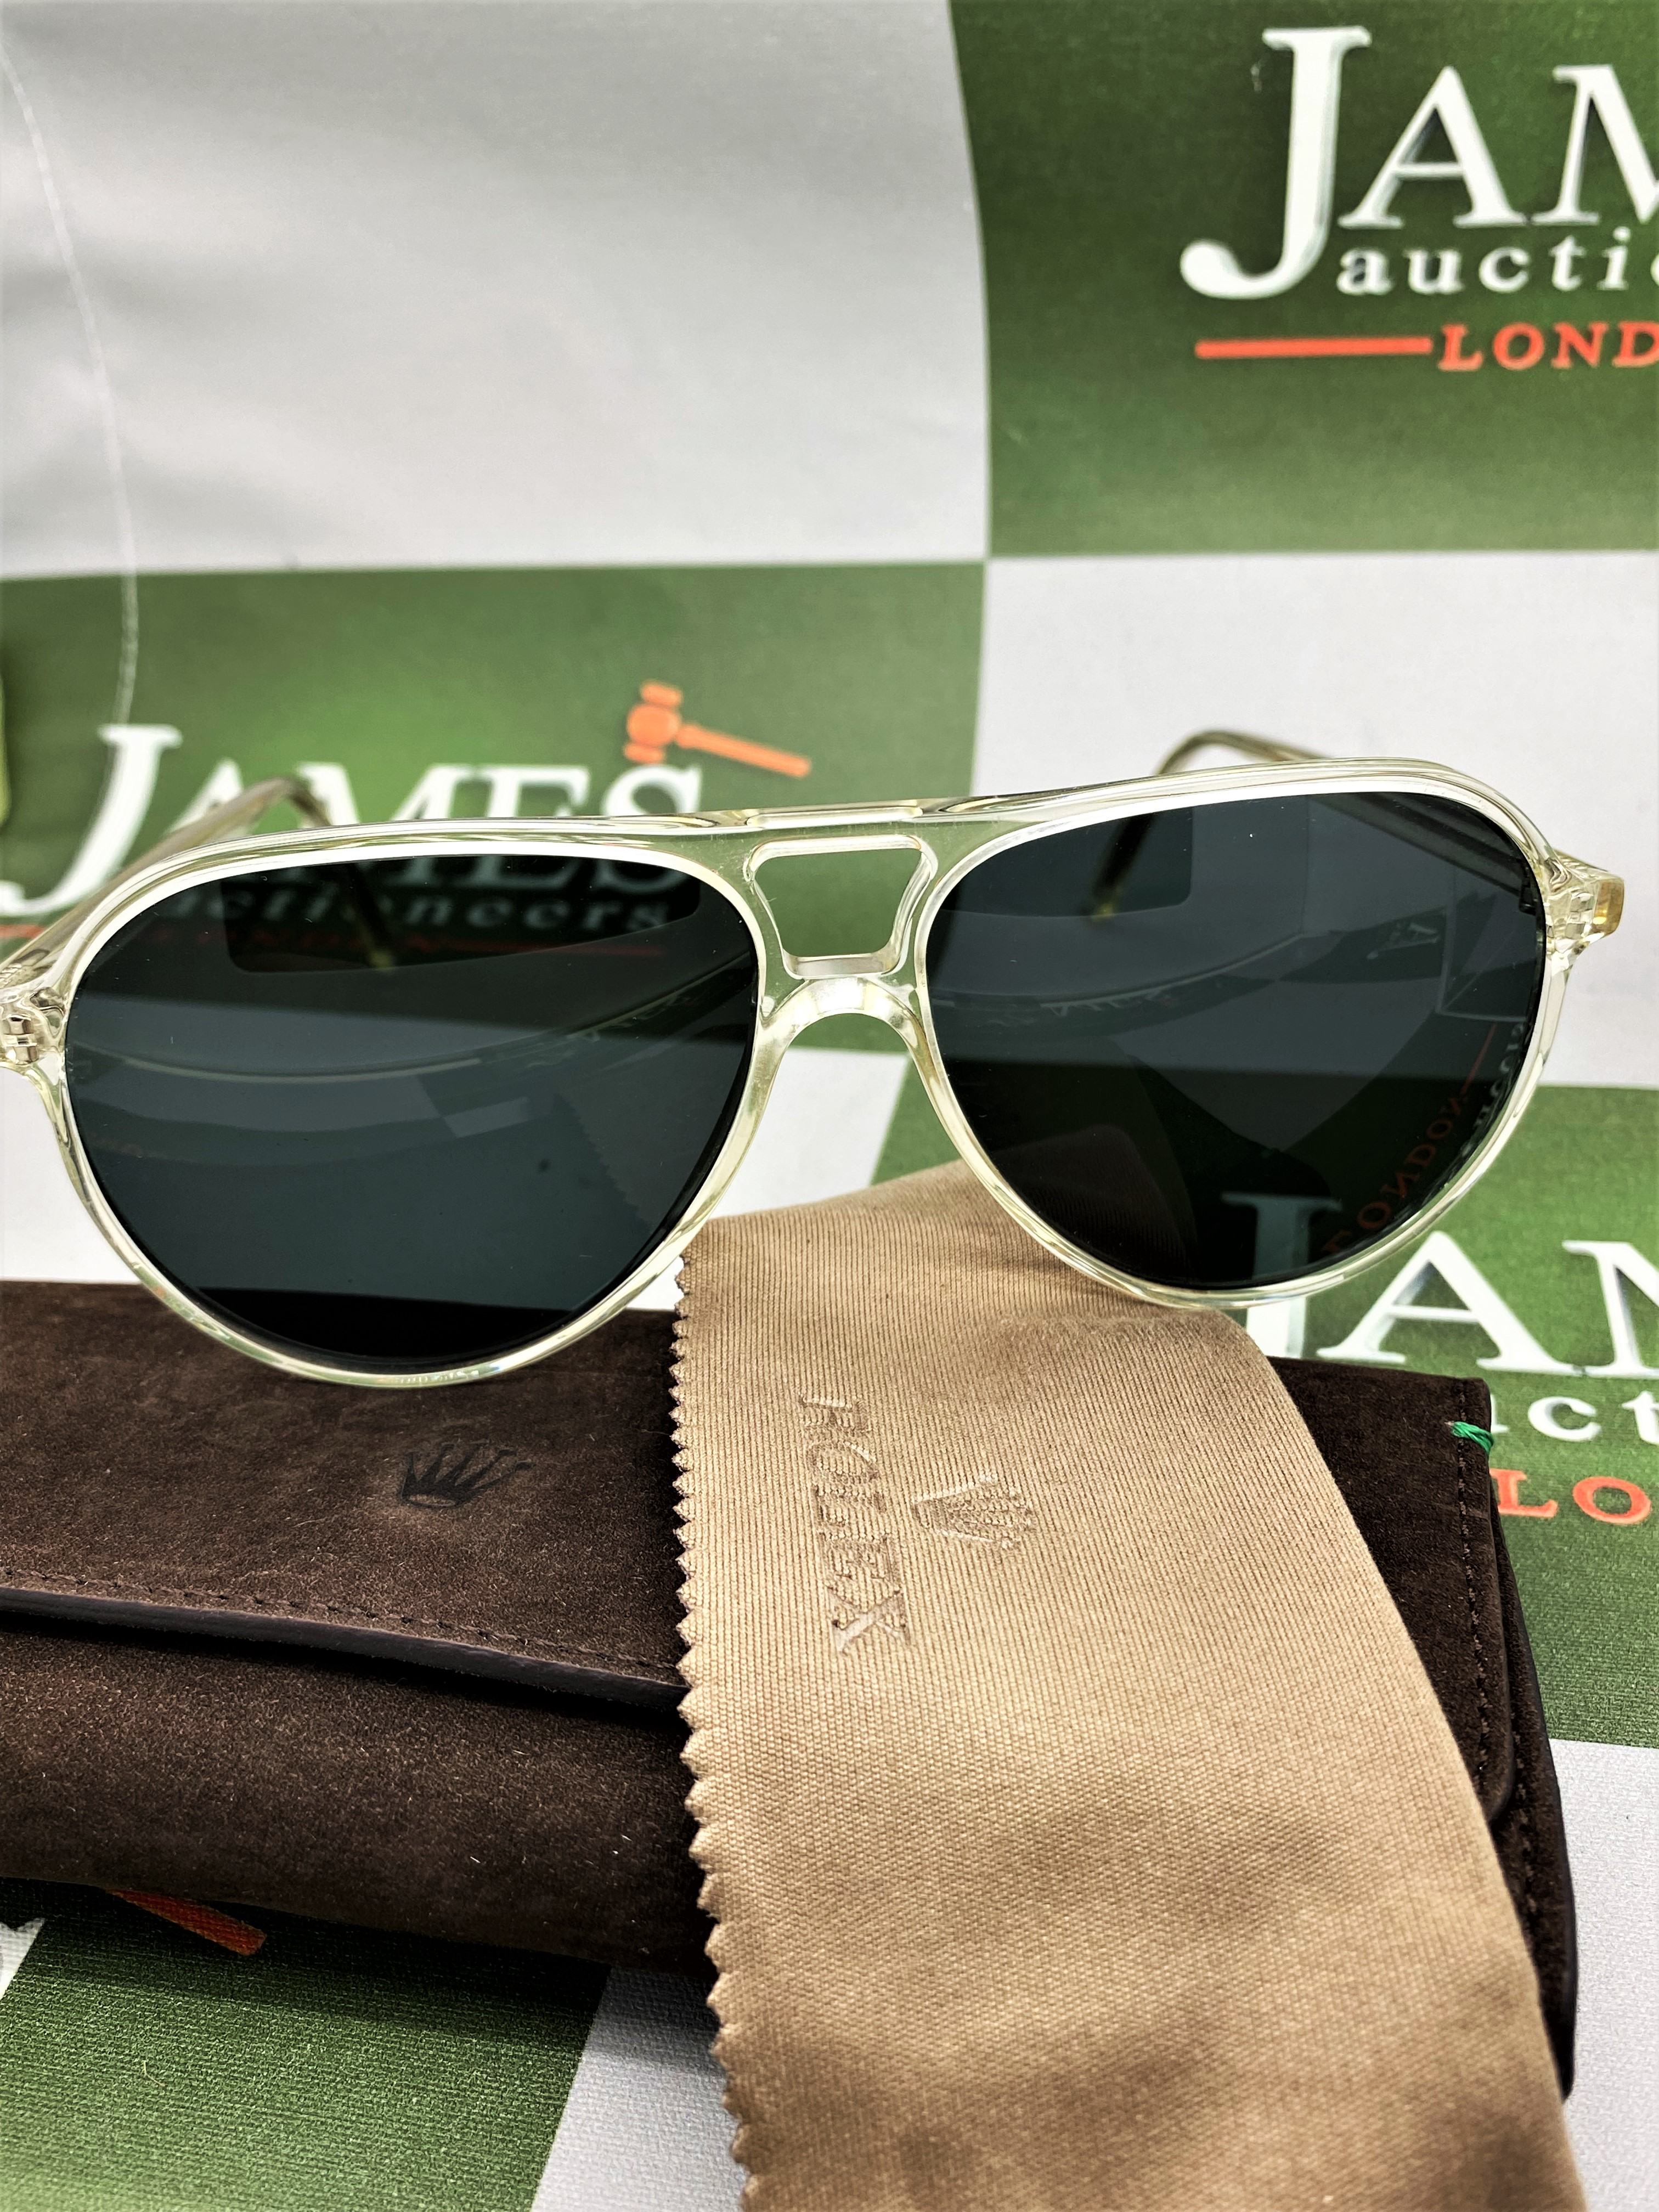 Rolex Official Merchandise Sunglasses-New Examples, Very Rare. - Image 4 of 7